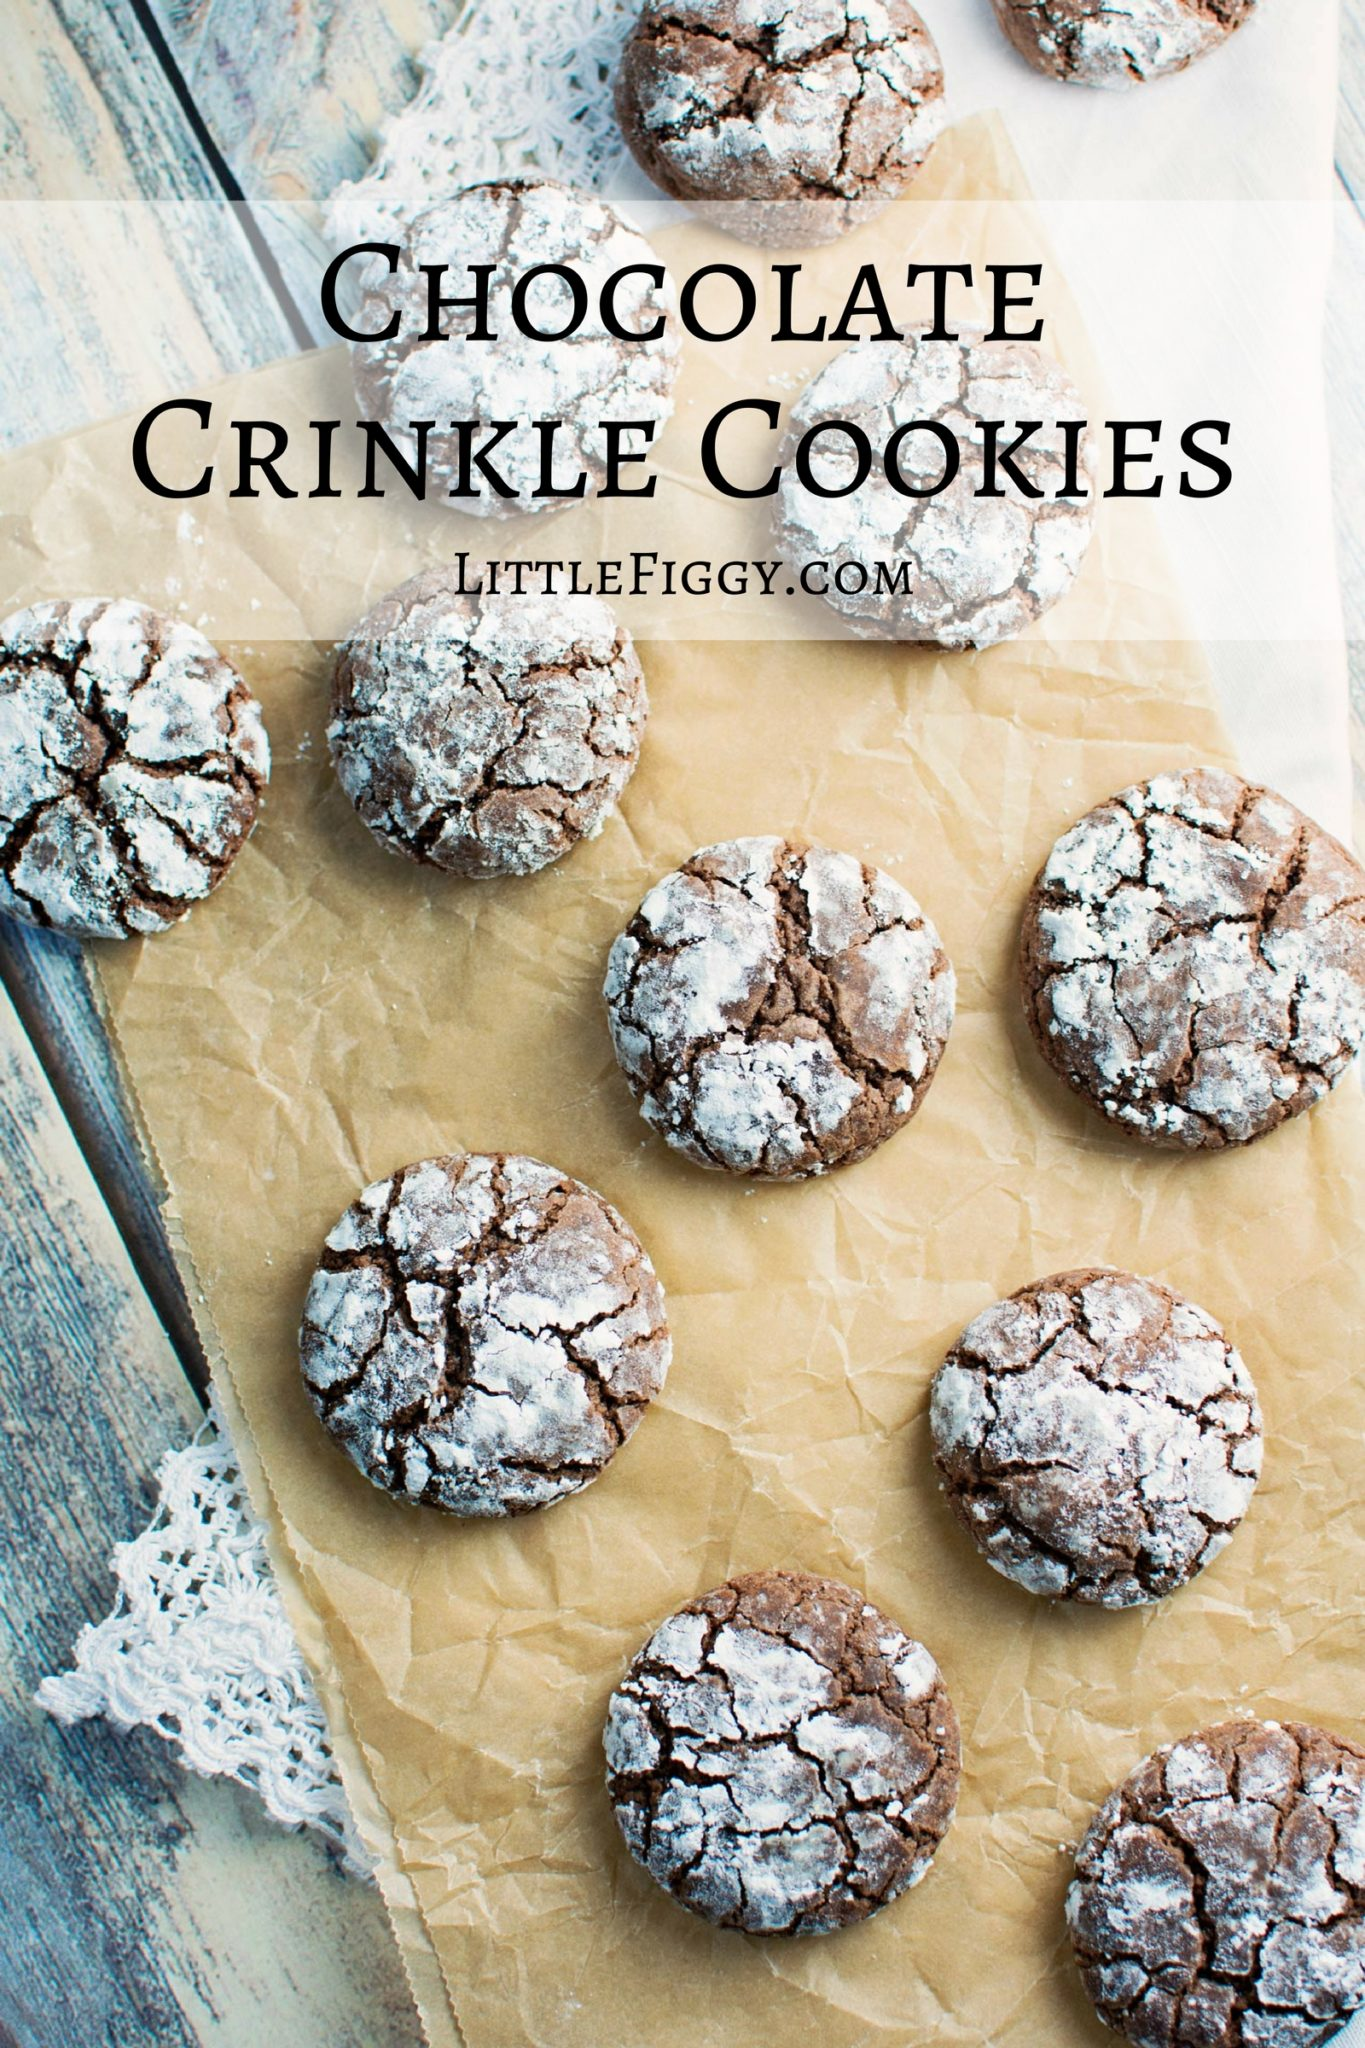 Chocolate Crinkle Cookies - Little Figgy Food